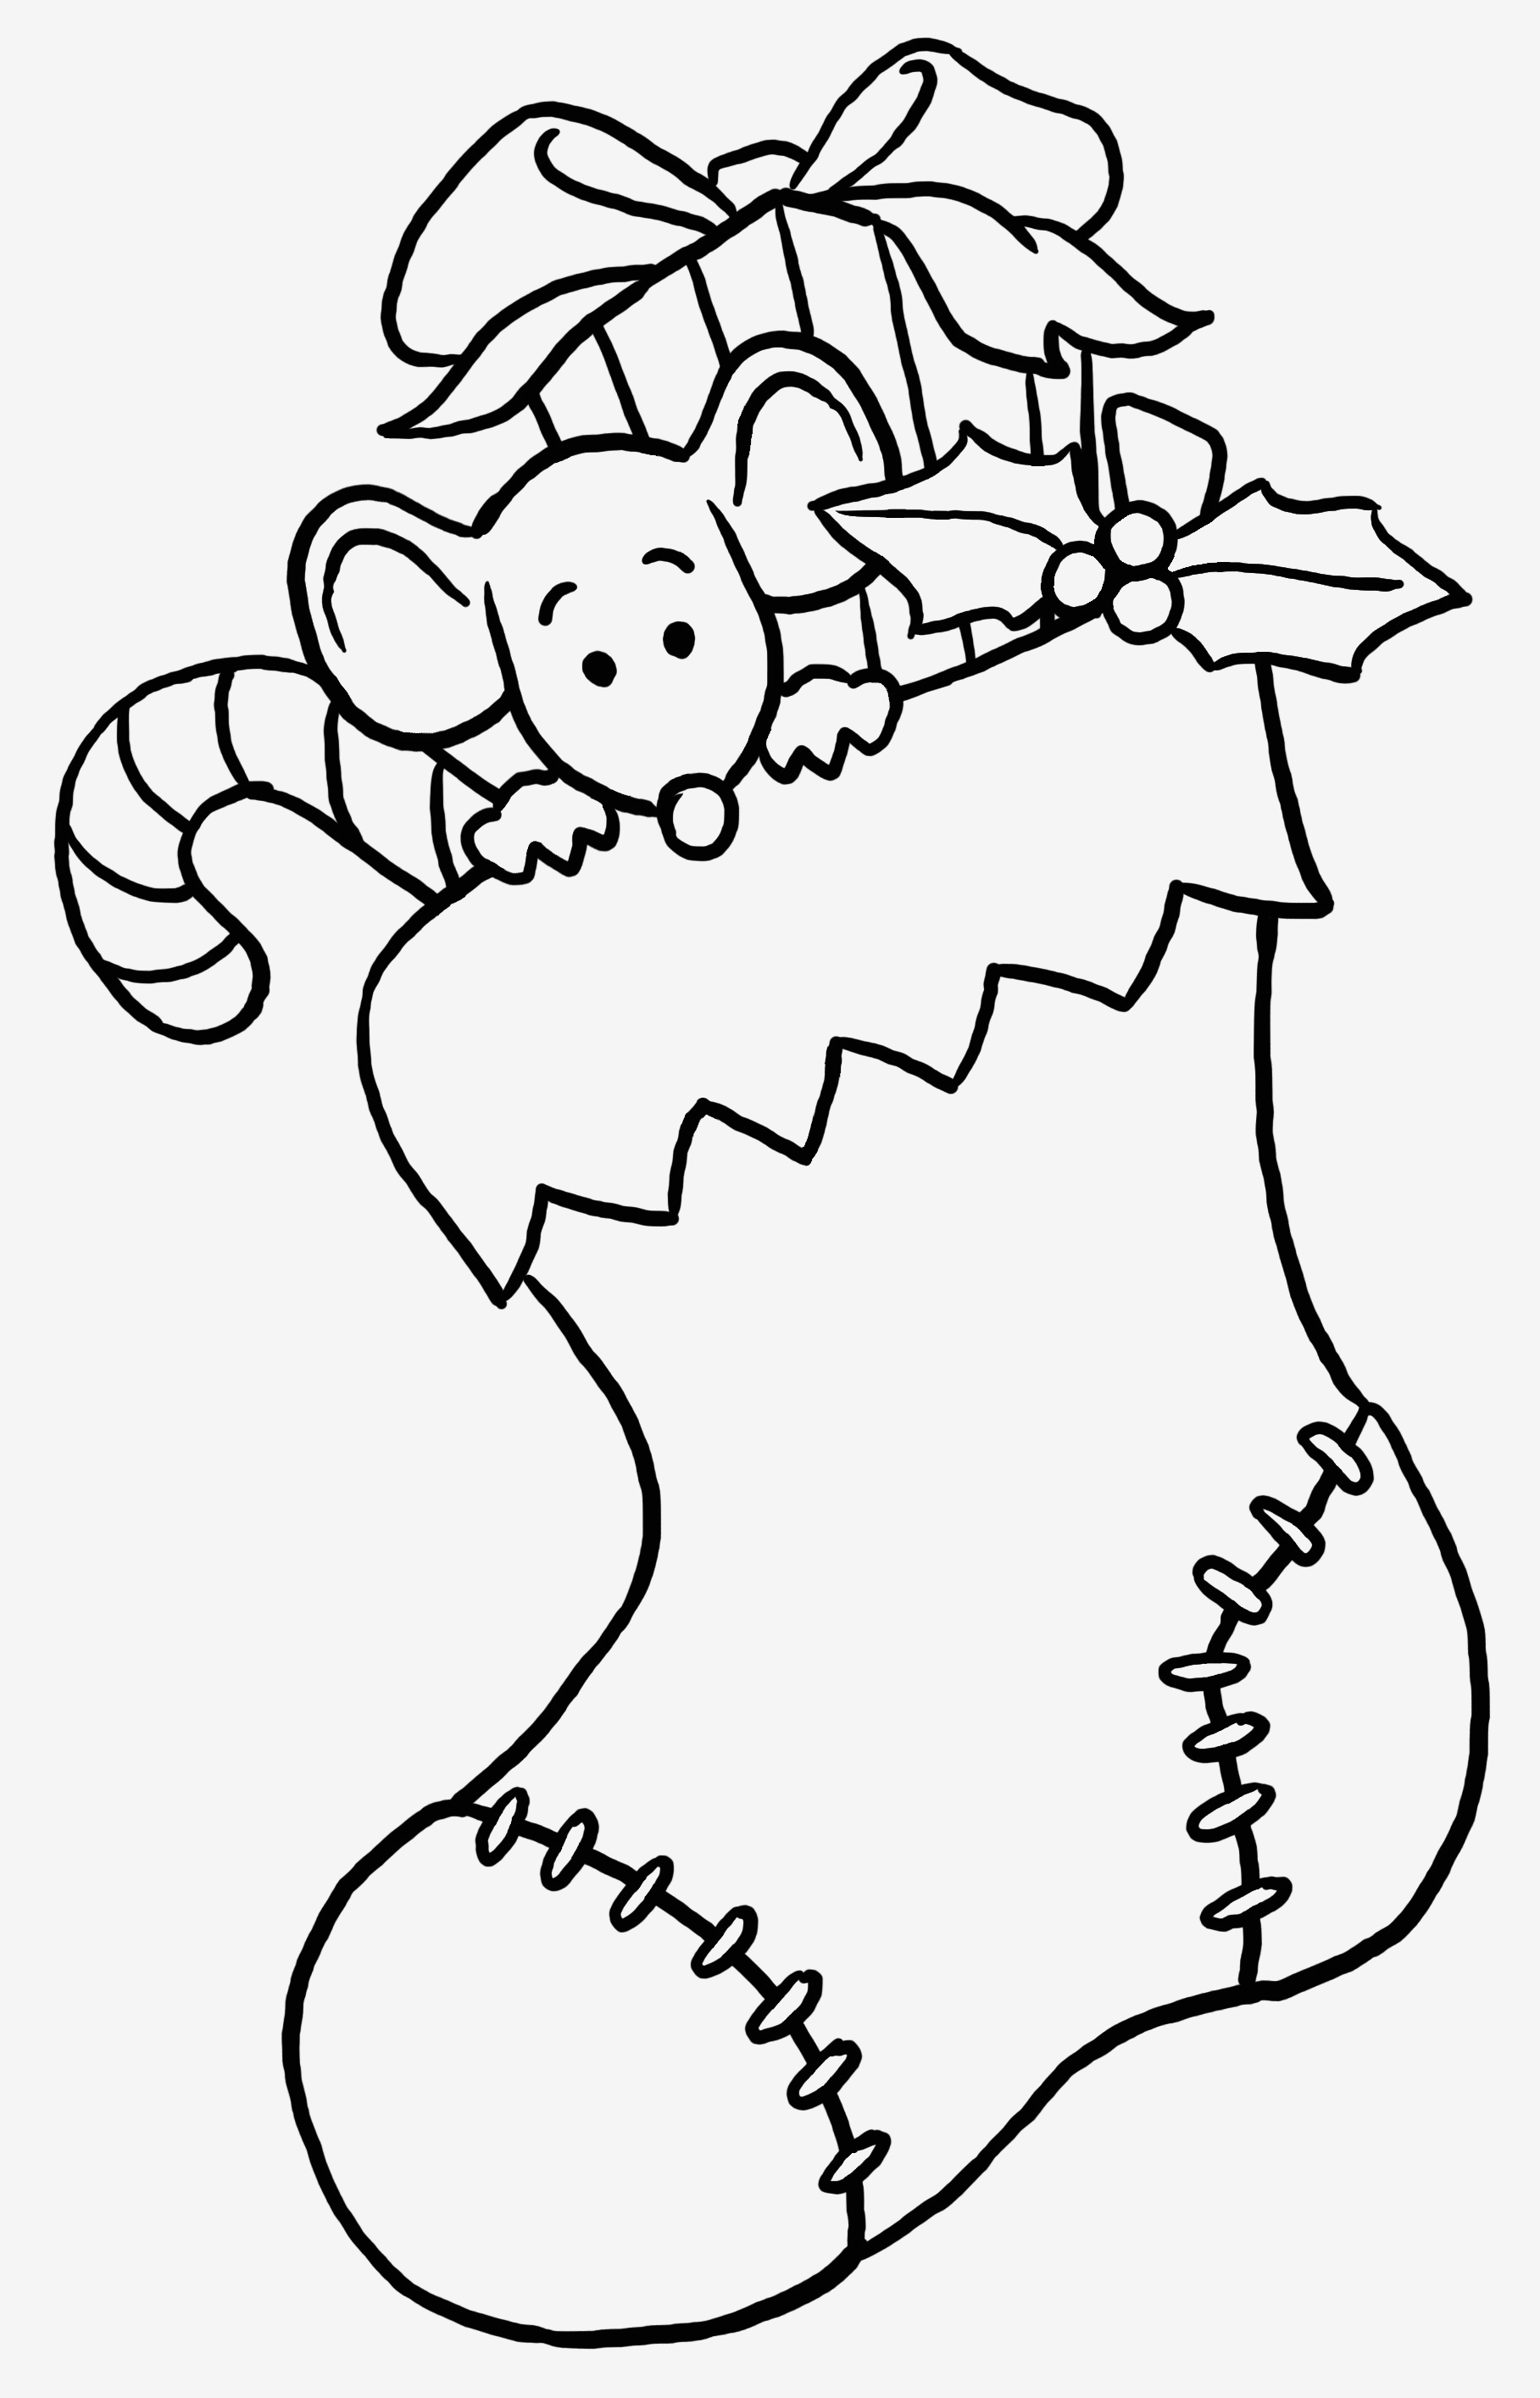 Christmas Colouring Pages Ks1 With For Free Printable Coloring Page Kids